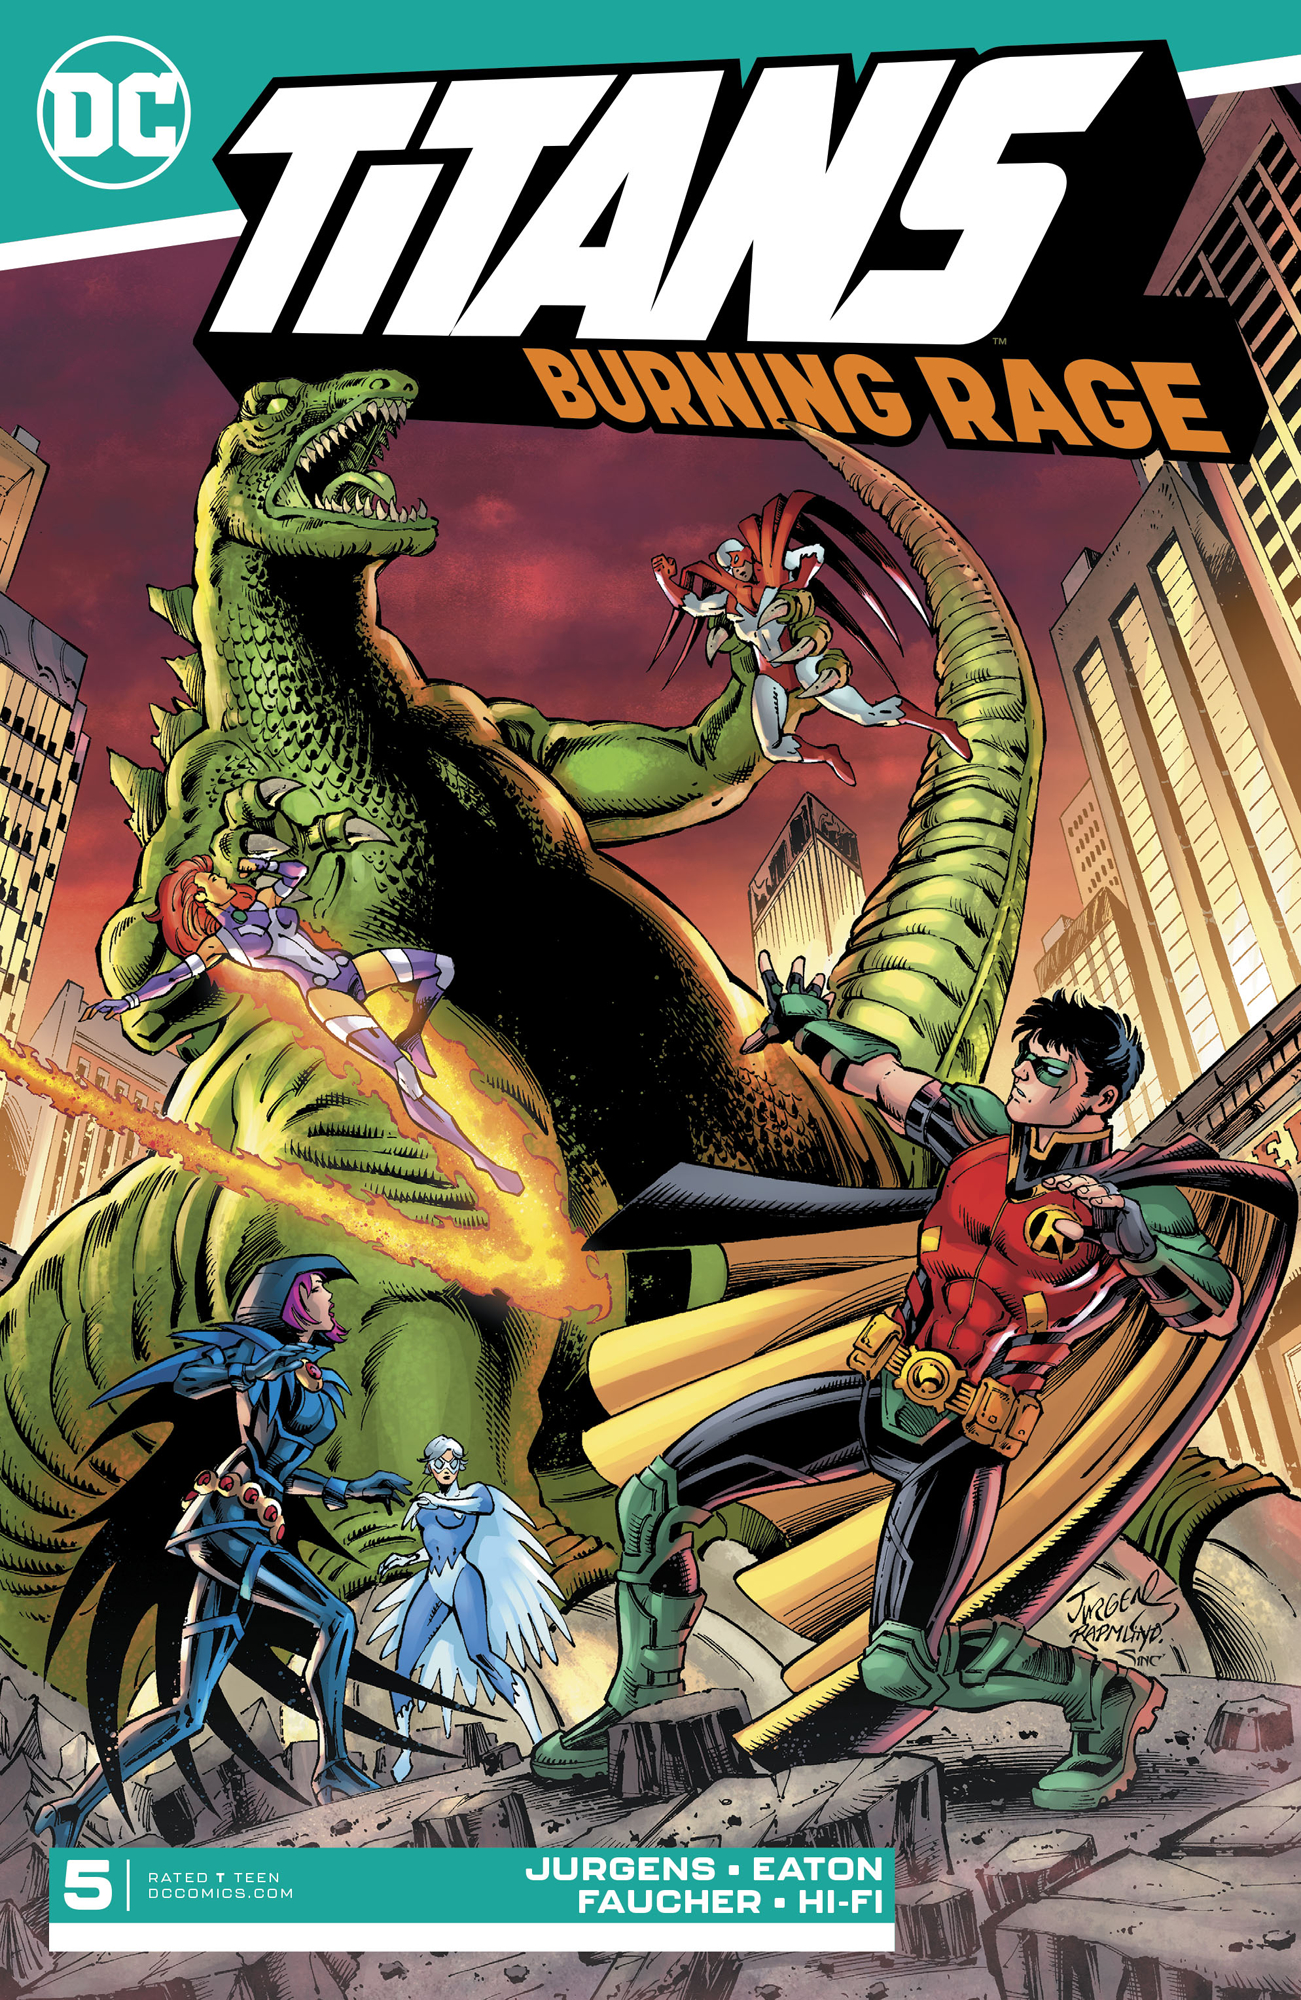 TITANS BURNING RAGE #5 (OF 7)